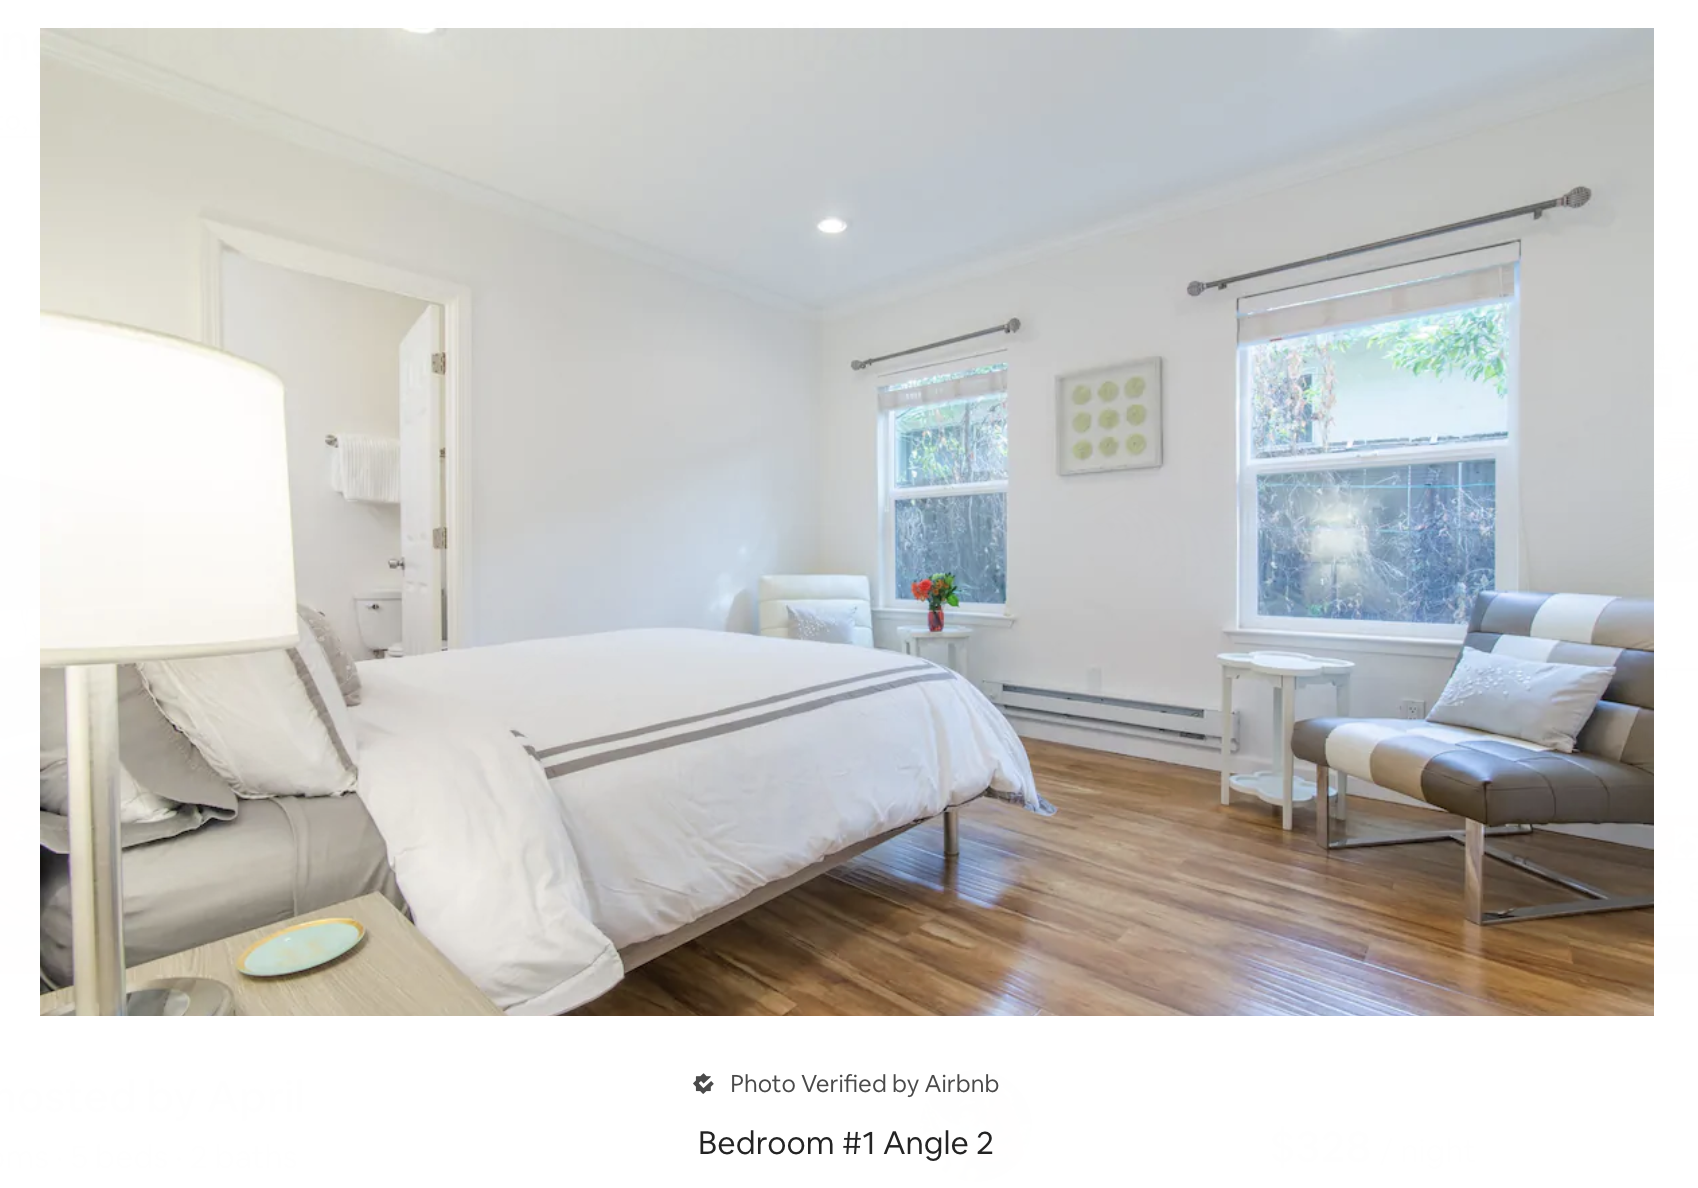 an airby bedroom photo from airbnb website, with the following caption: bedroom  number 1 angle 2